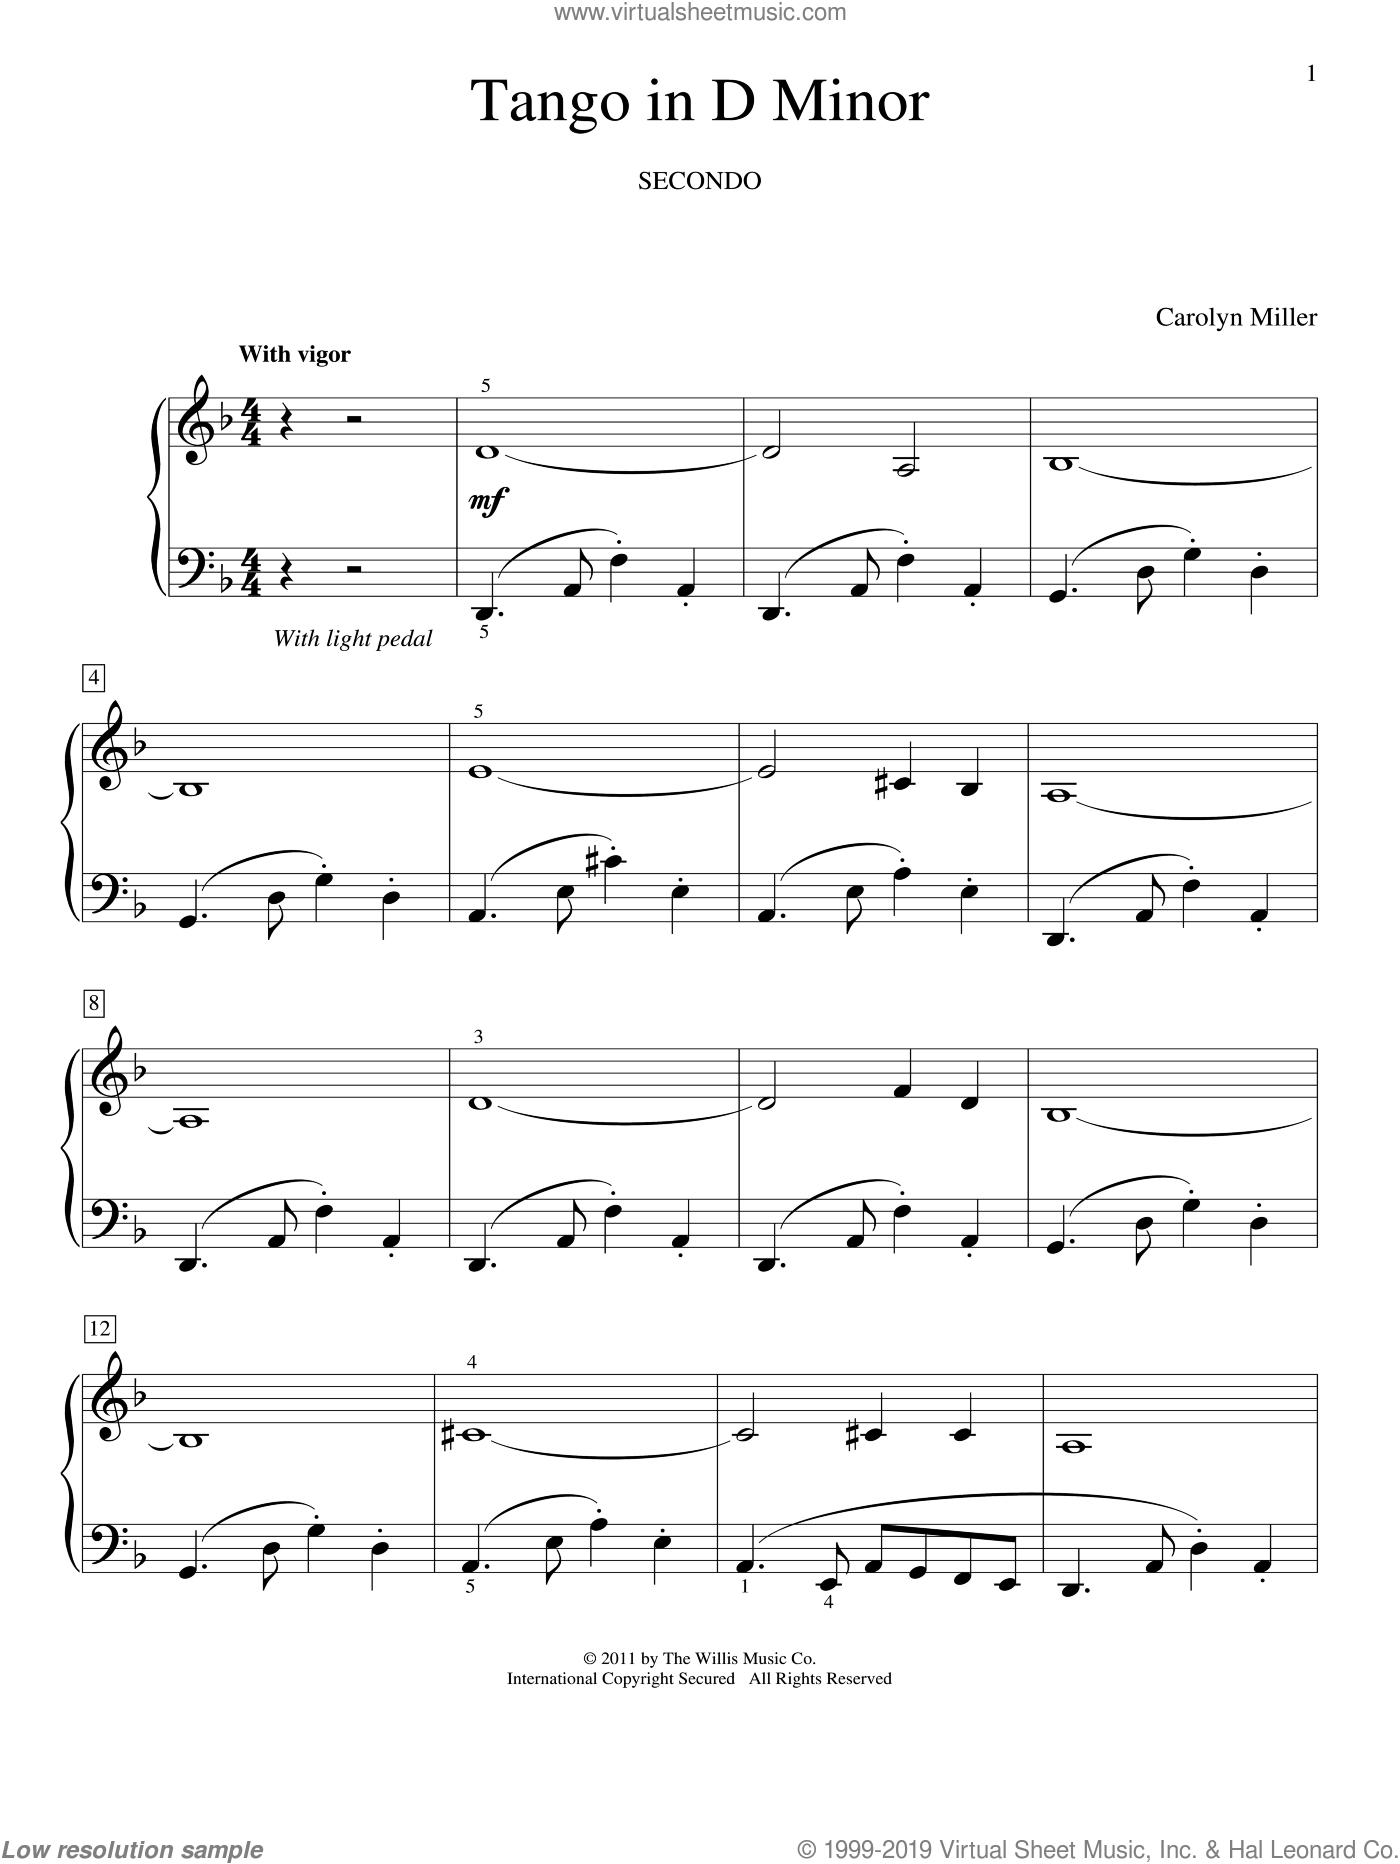 Tango In D Minor sheet music for piano four hands (duets) by Carolyn Miller. Score Image Preview.